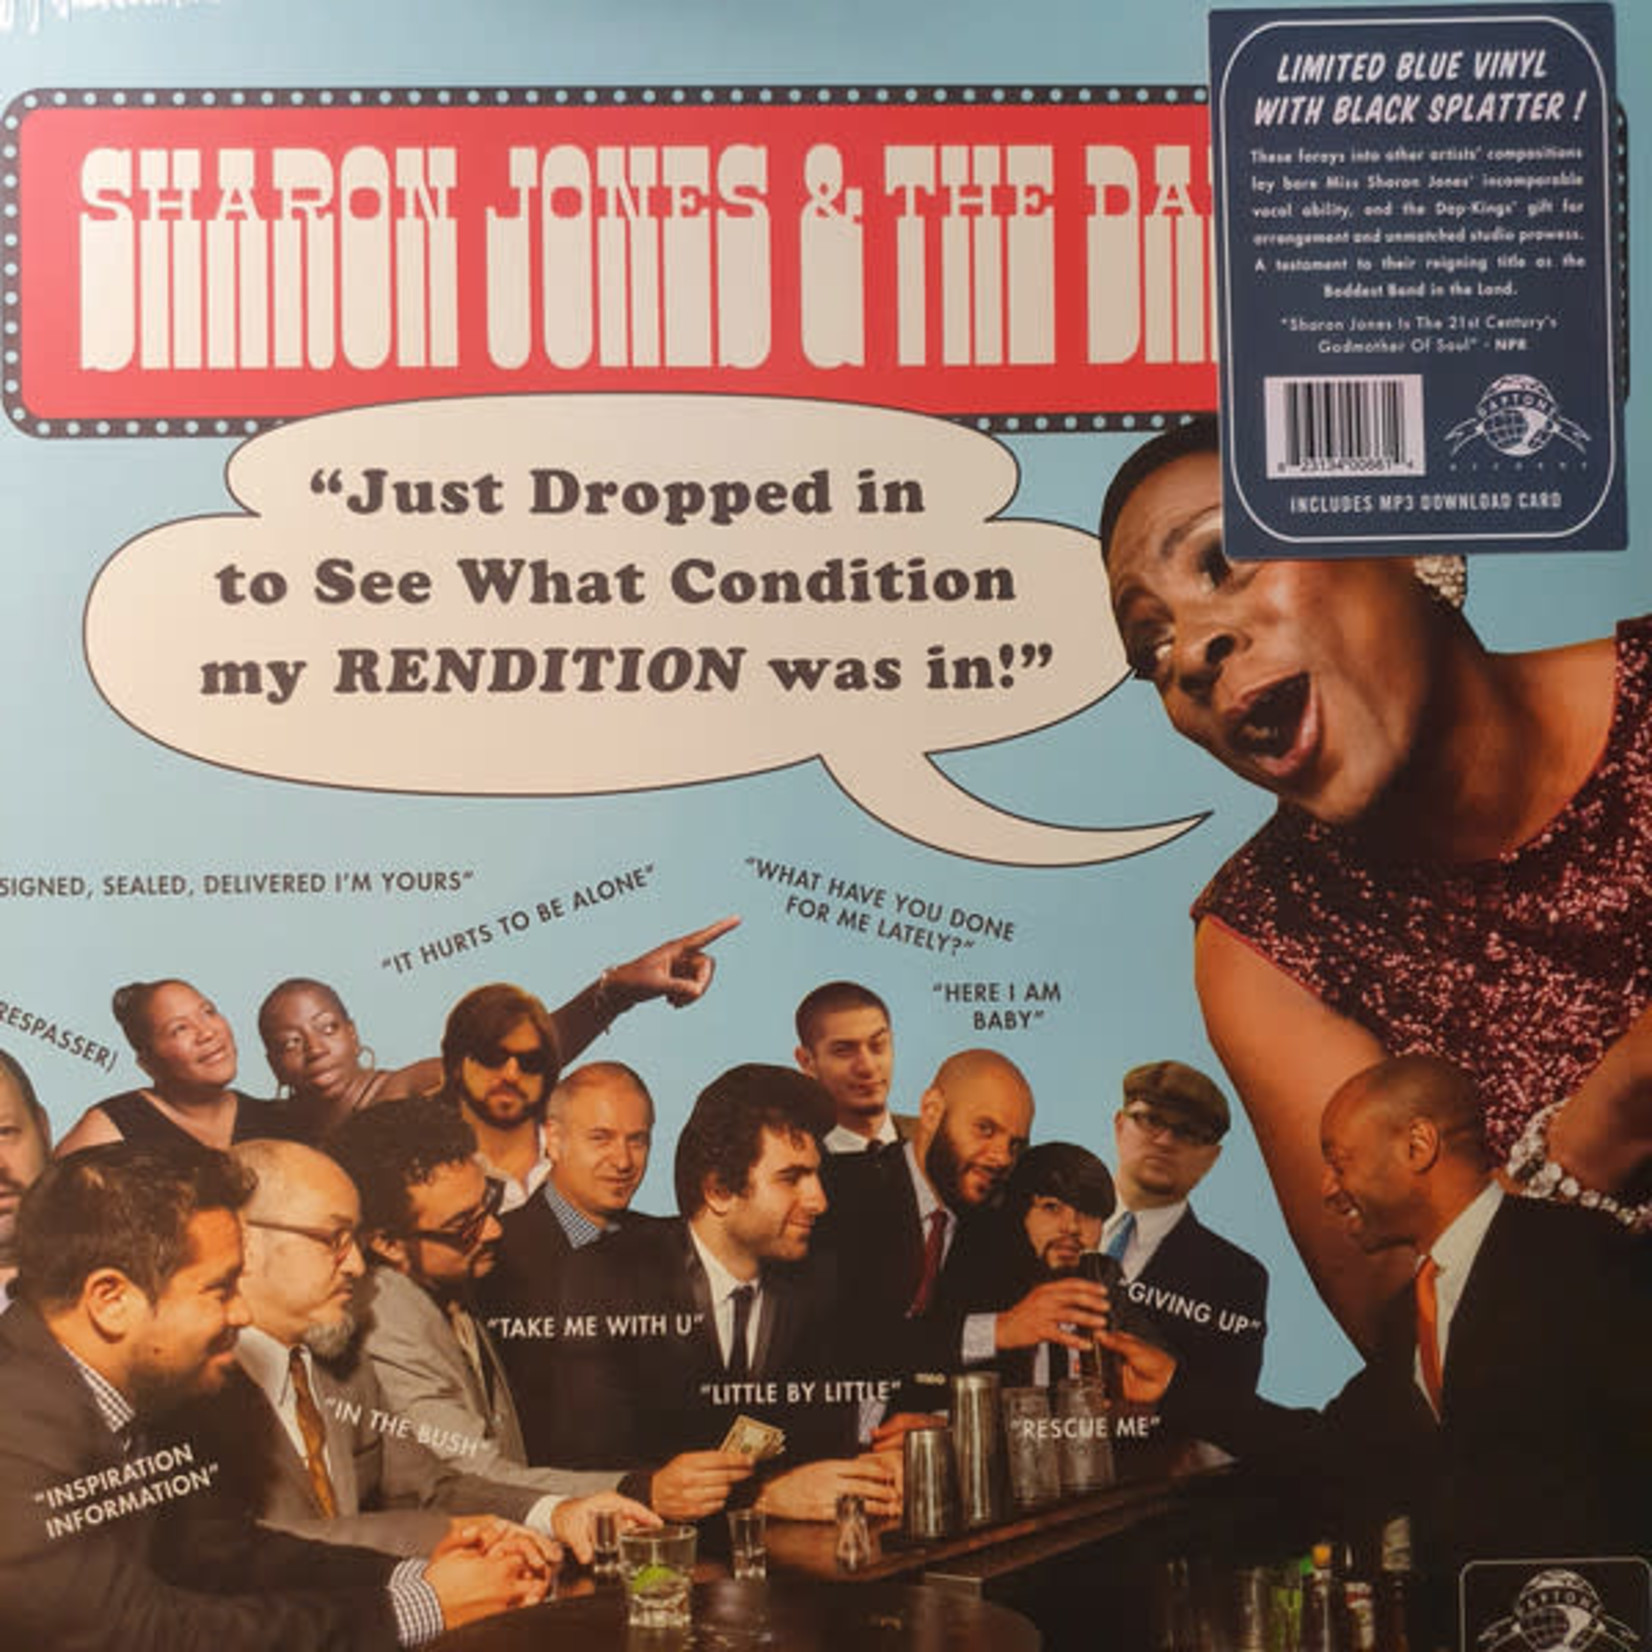 SHARON JONES BF 2020 - JUST DROPPED IN (TO SEE WHAT CONDITION MY RENDITION WAS IN)